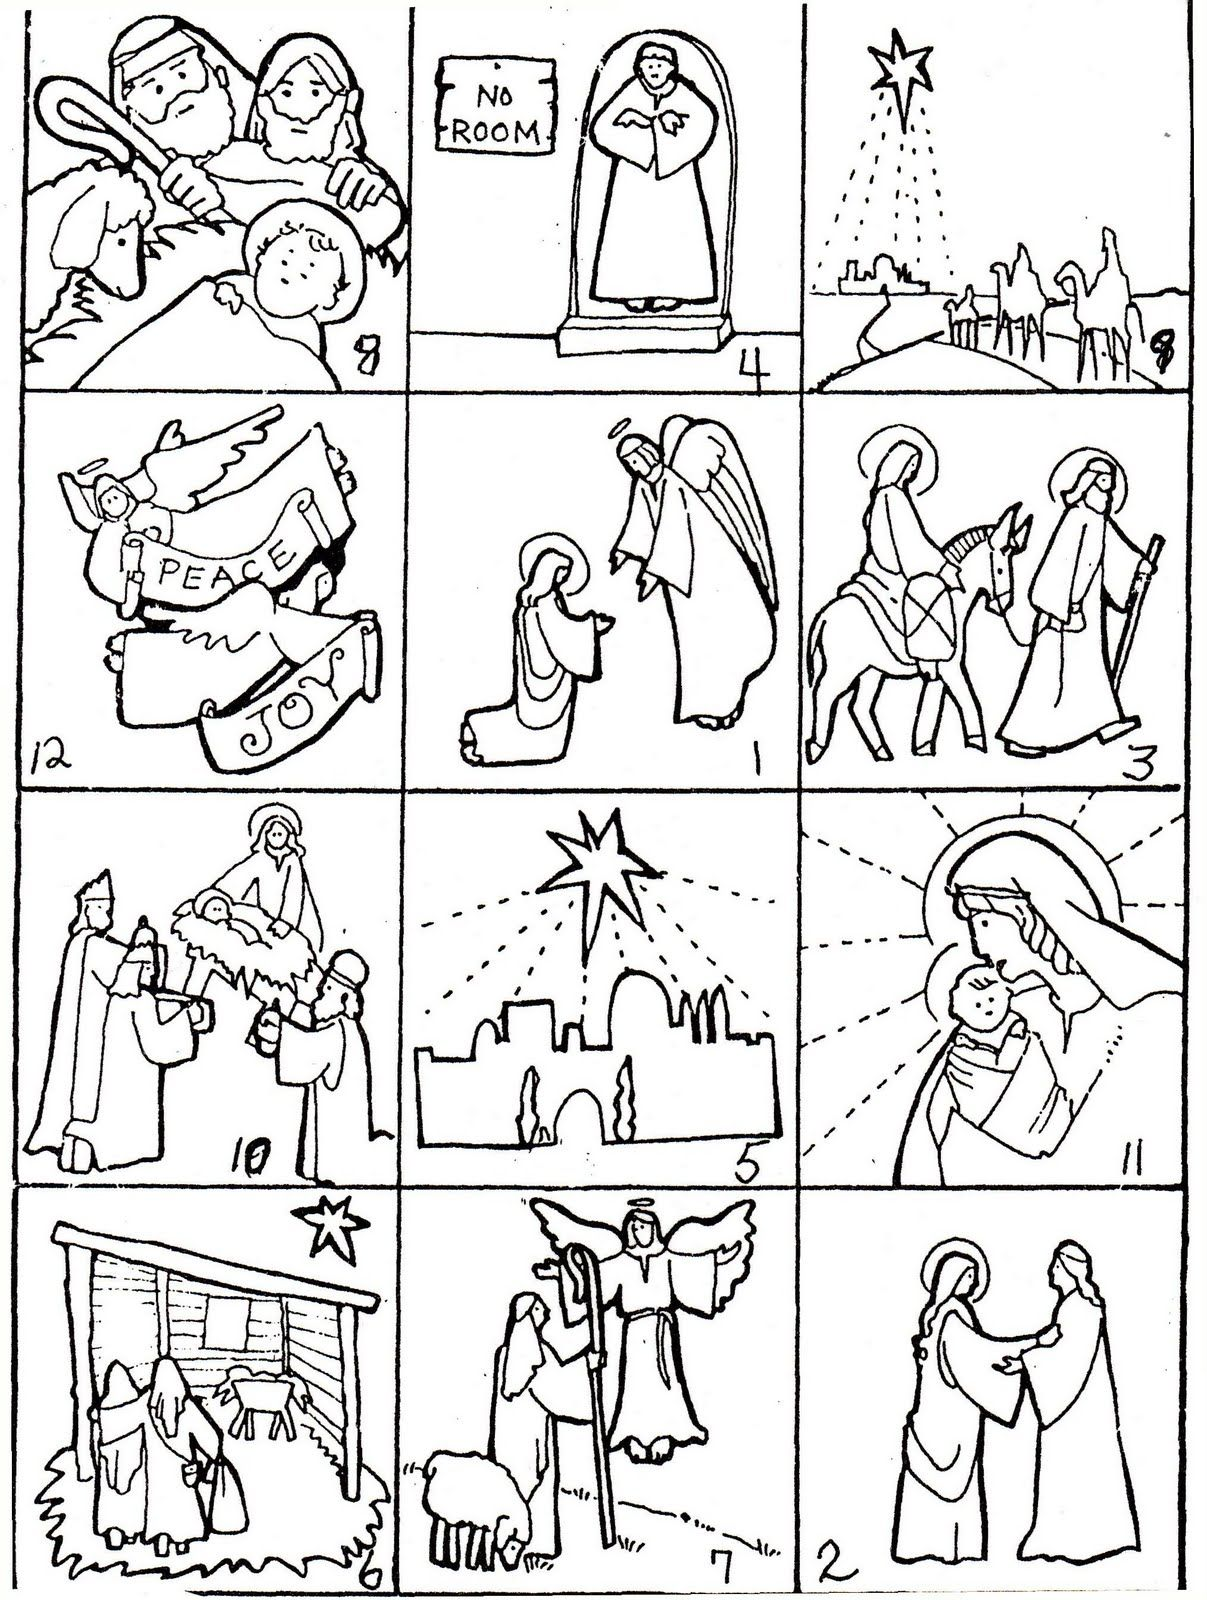 Elementary School Enrichment Activities Christmas Story